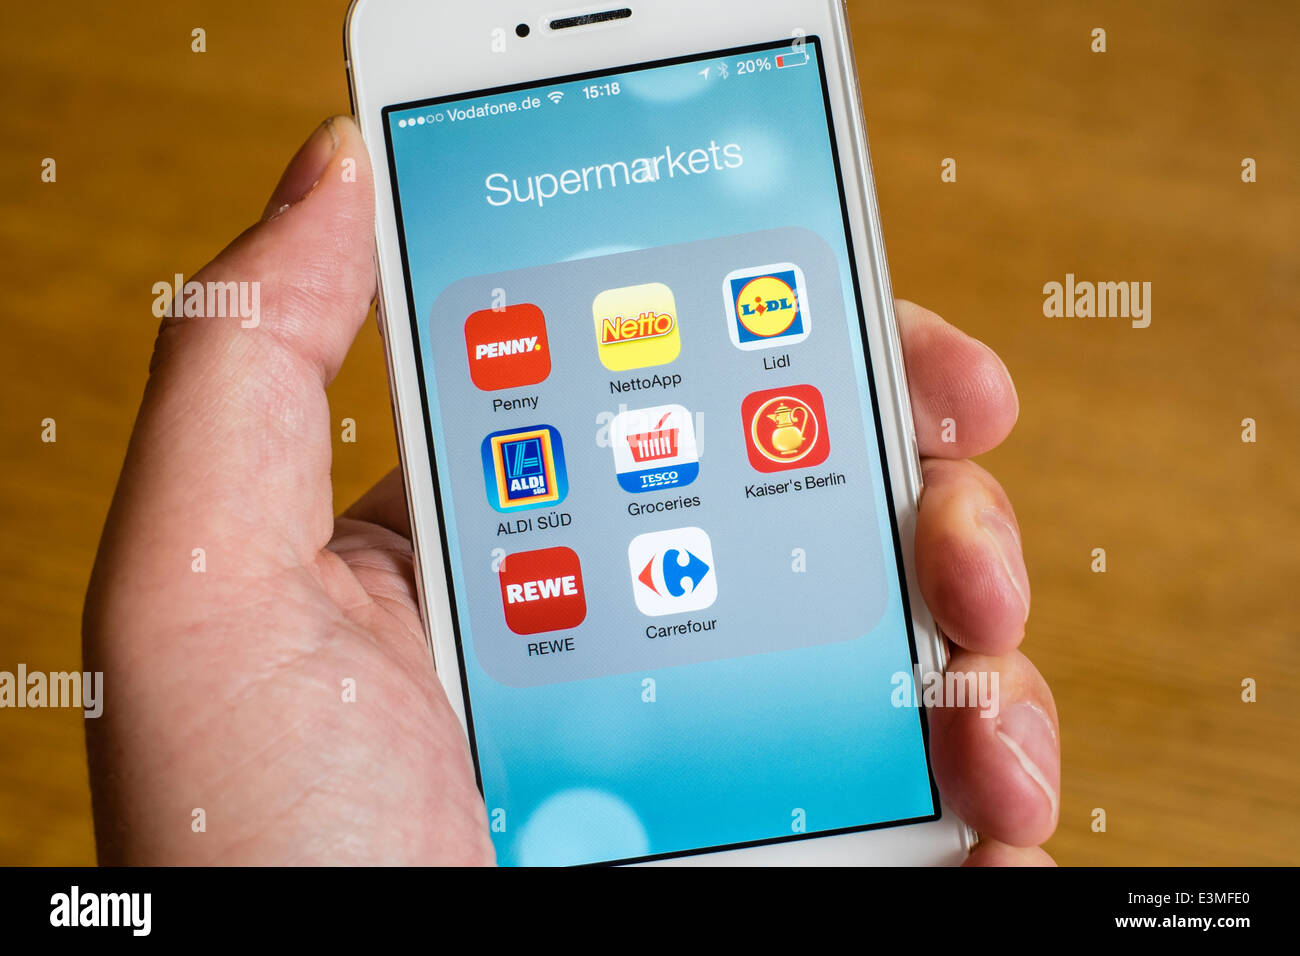 Detail of many online discount  supermarket shopping apps on iPhone smart phone - Stock Image